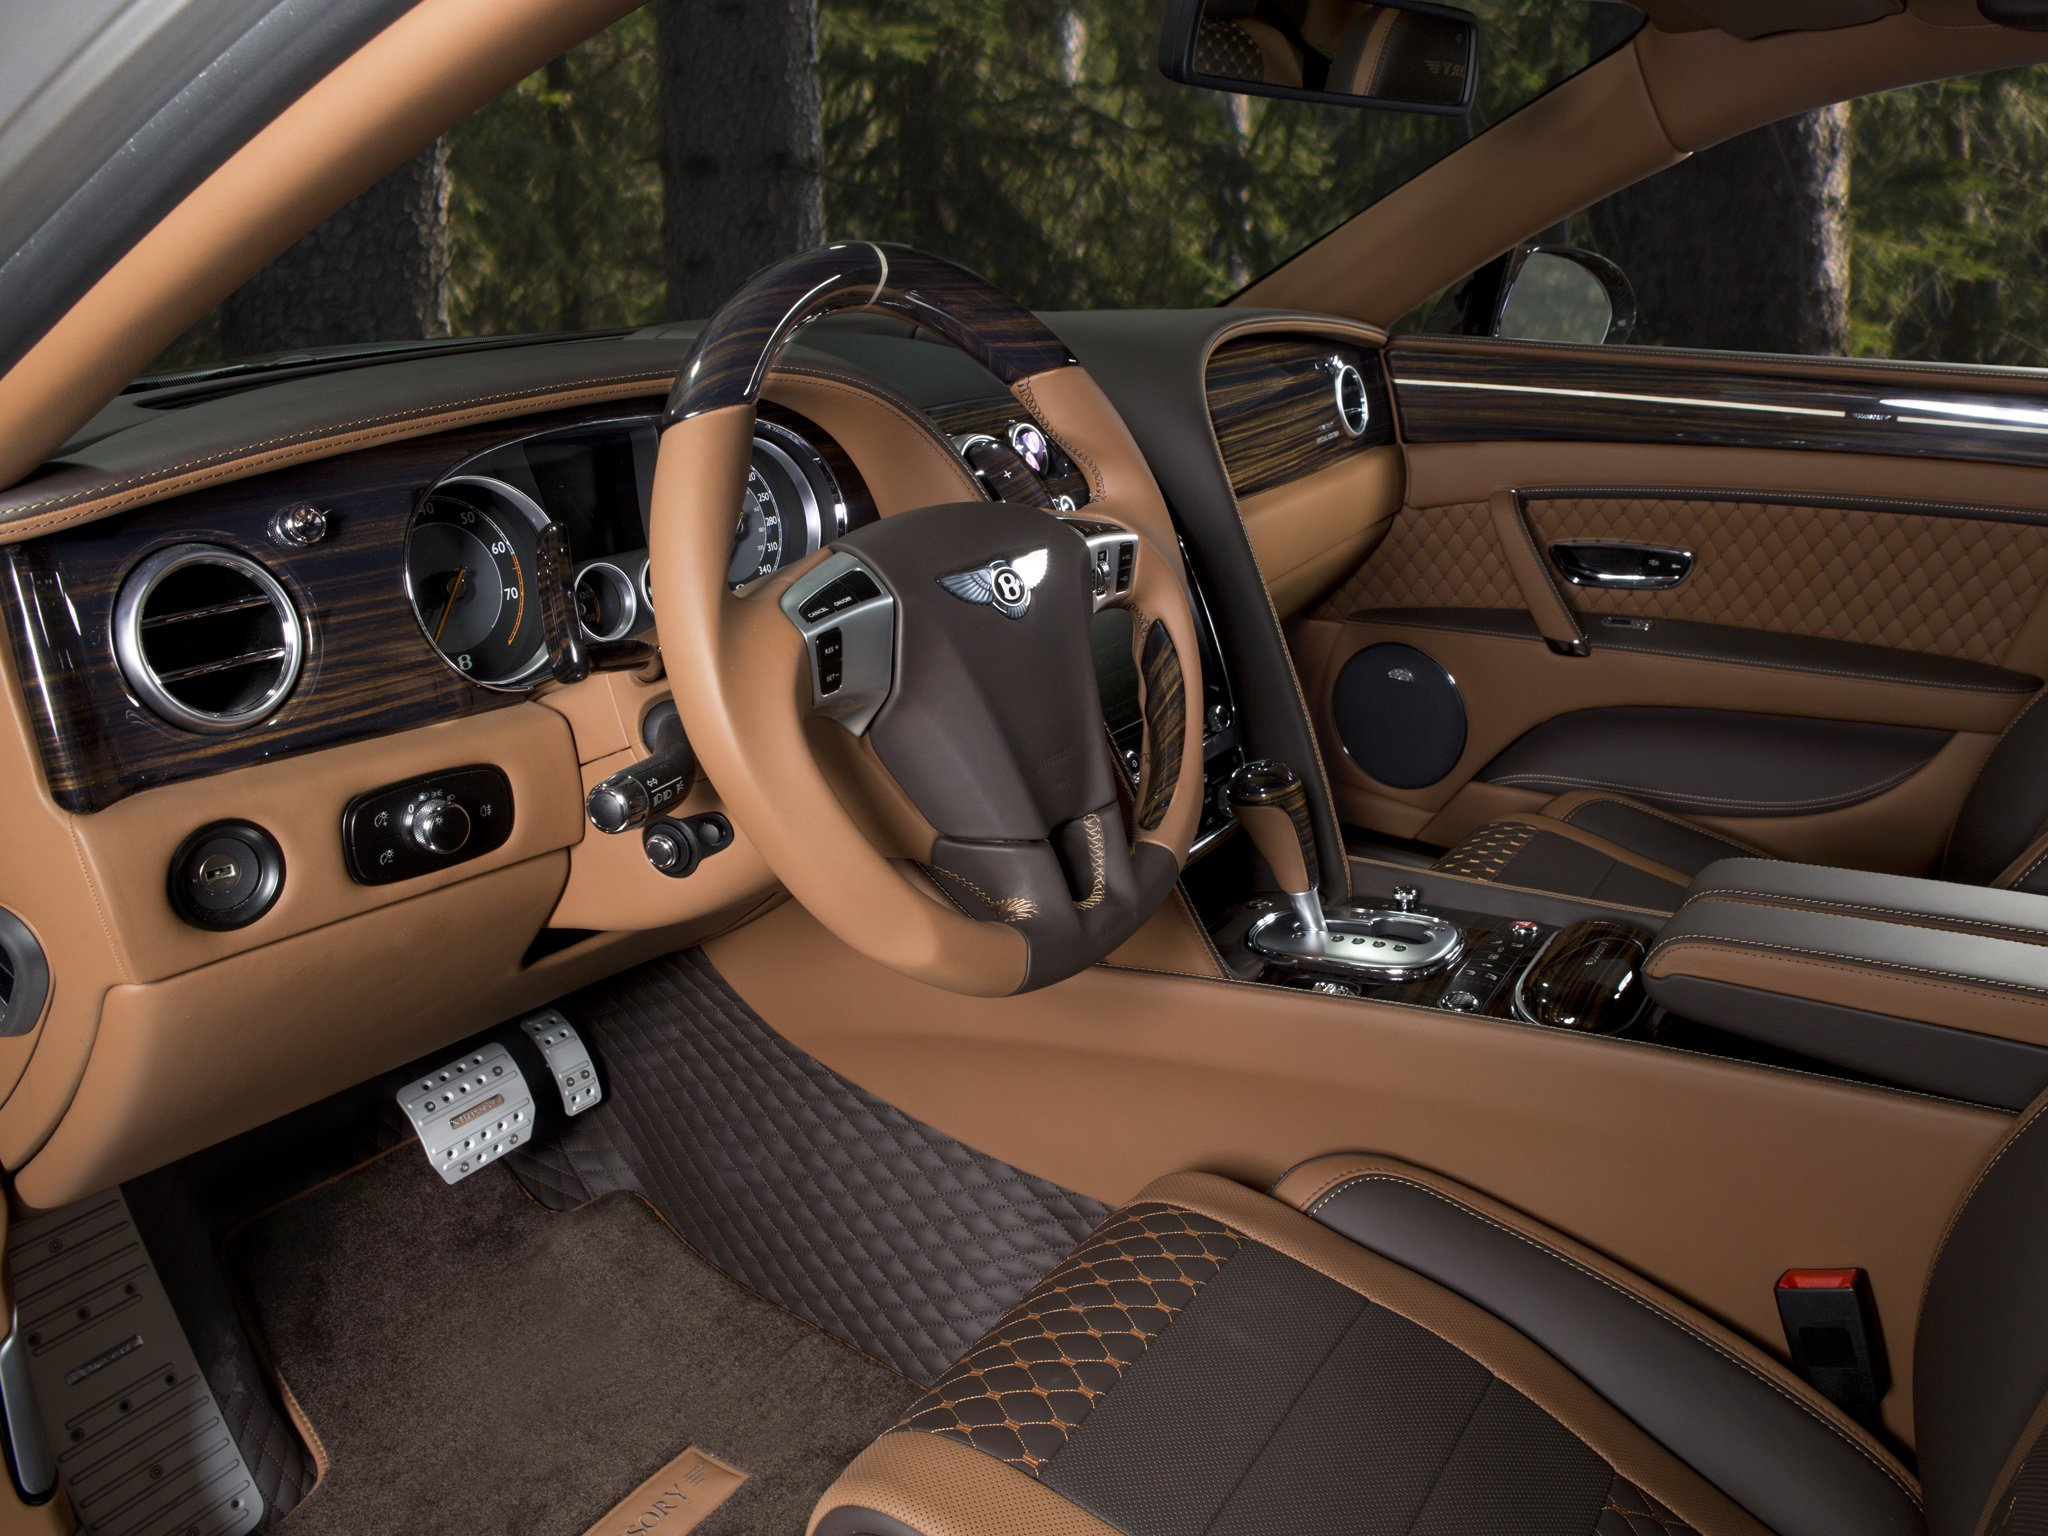 2014 Mansory Bentley Continental Flying Spur Luxury Interior G Wallpaper 2048x1536 287782 Wallpaperup